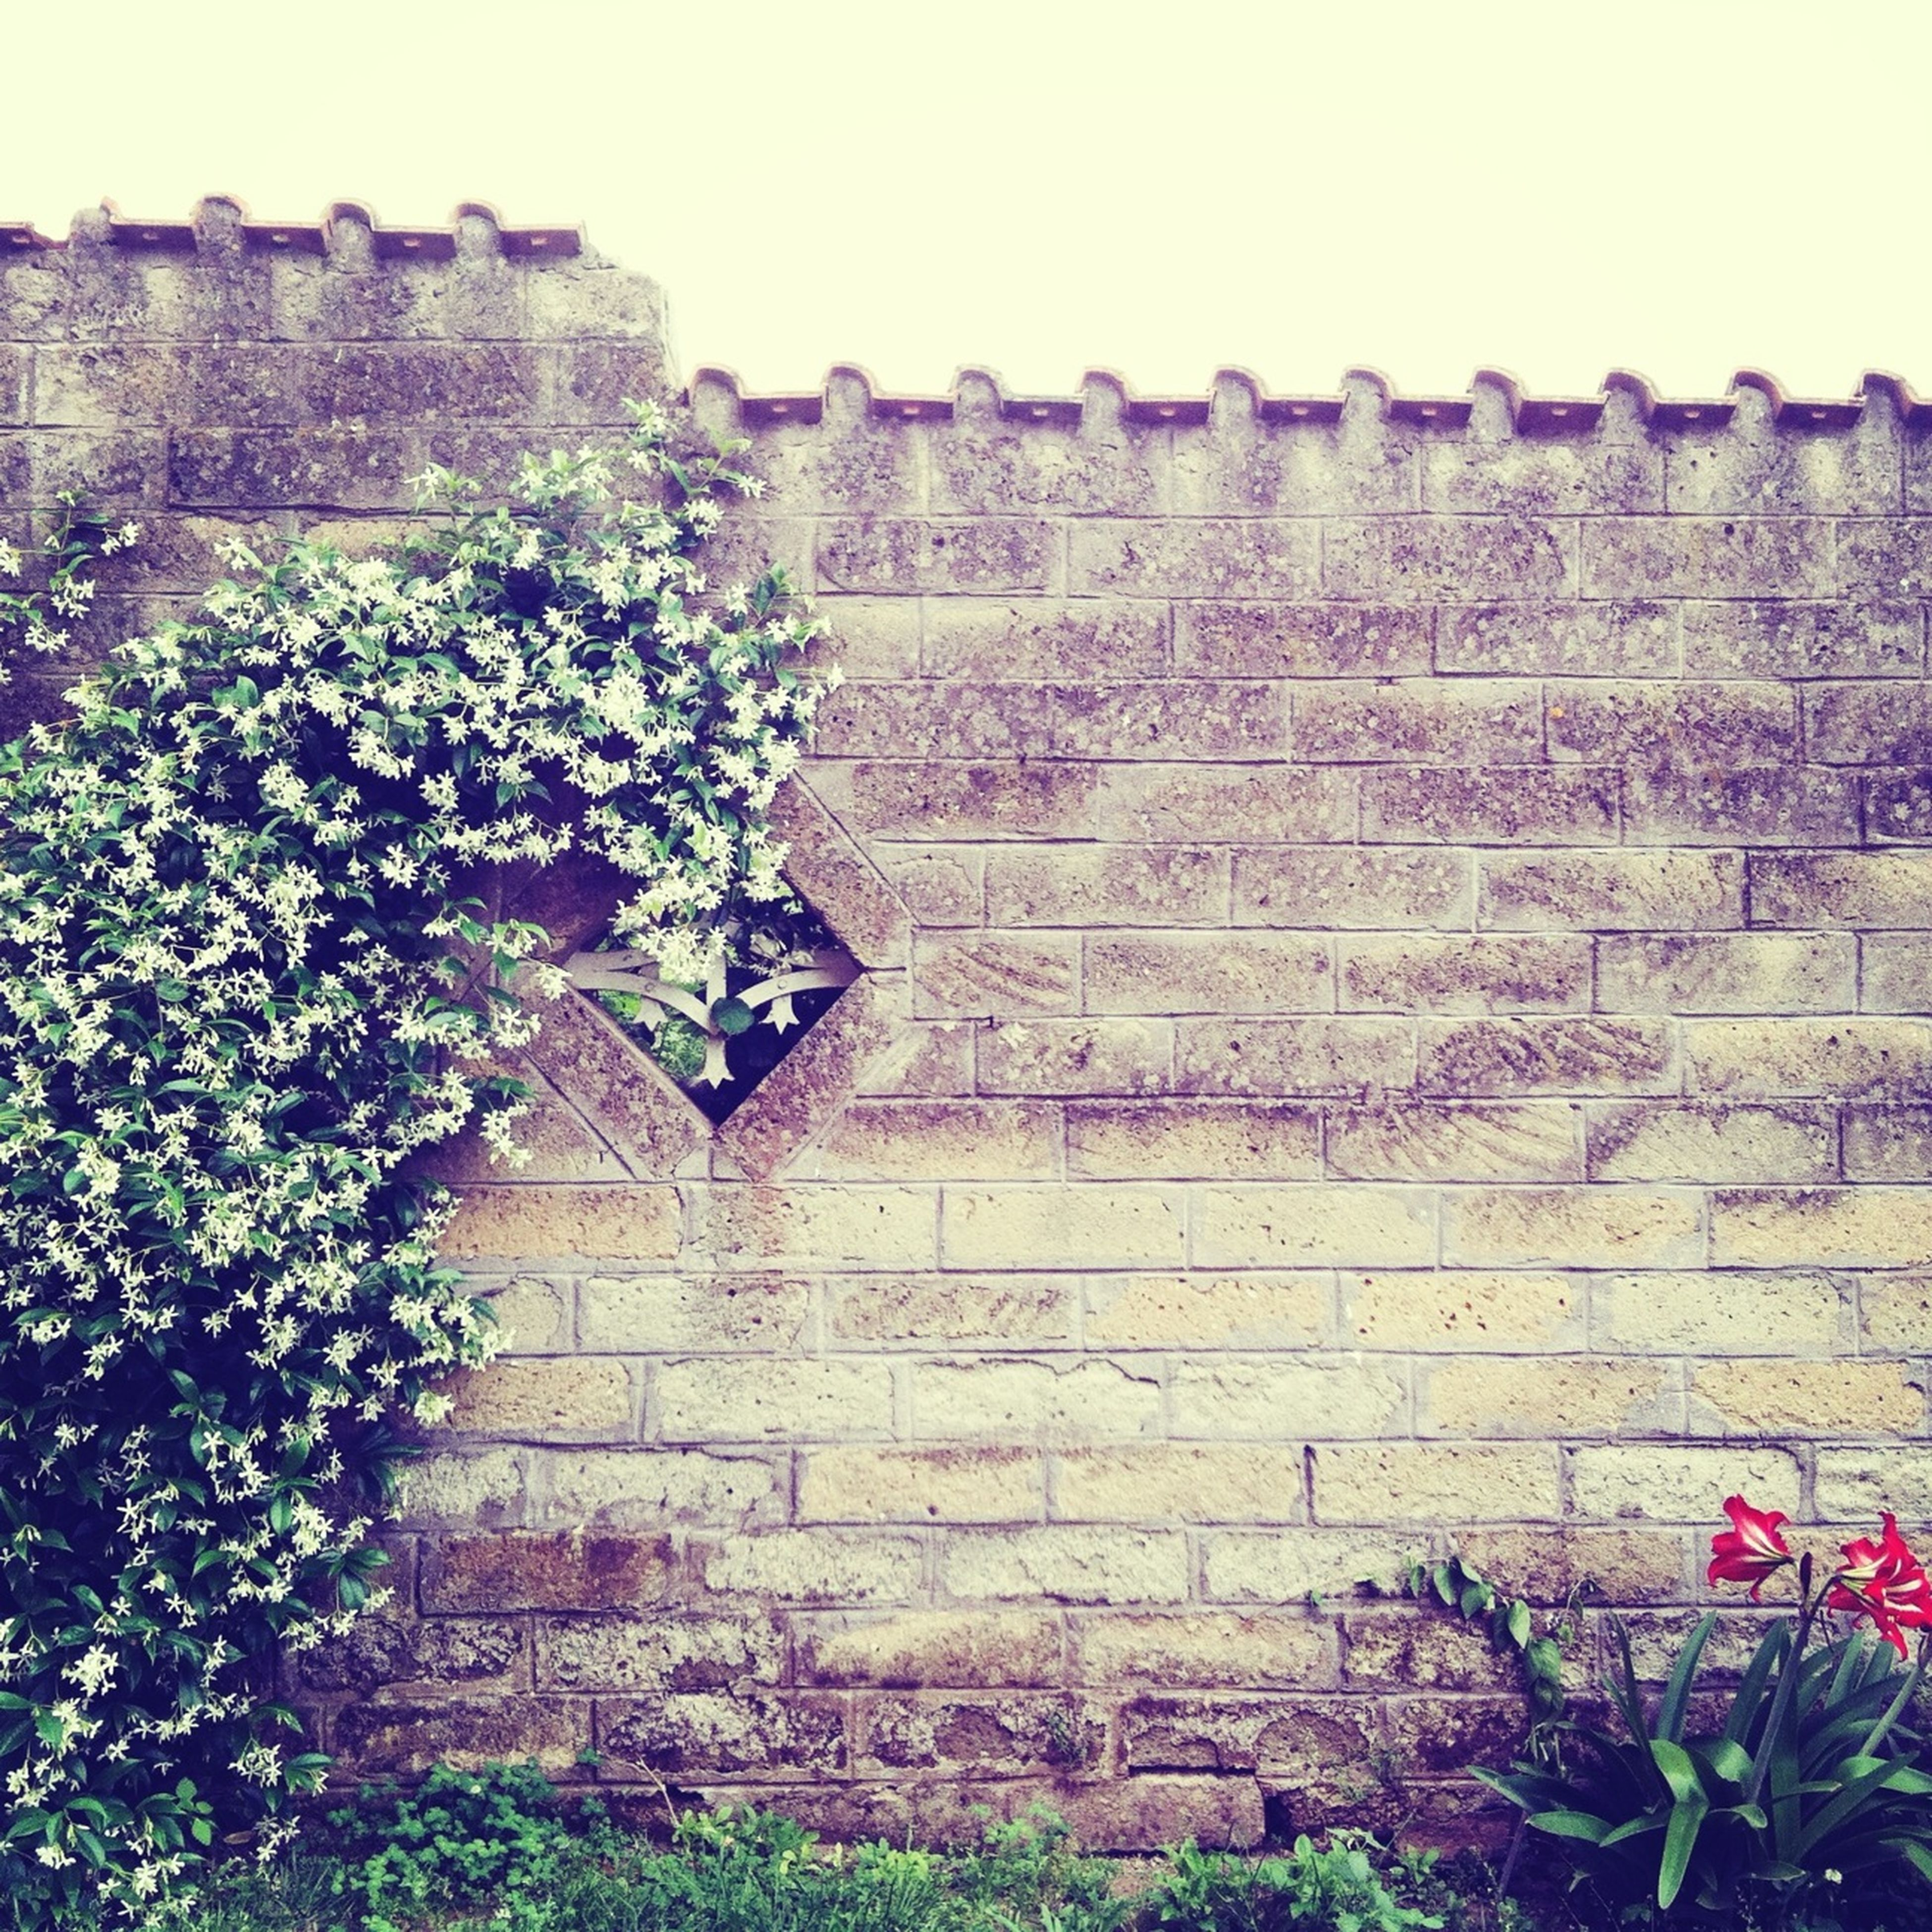 architecture, built structure, building exterior, plant, growth, flower, clear sky, wall - building feature, stone wall, old, brick wall, day, nature, outdoors, no people, house, ivy, wall, history, growing